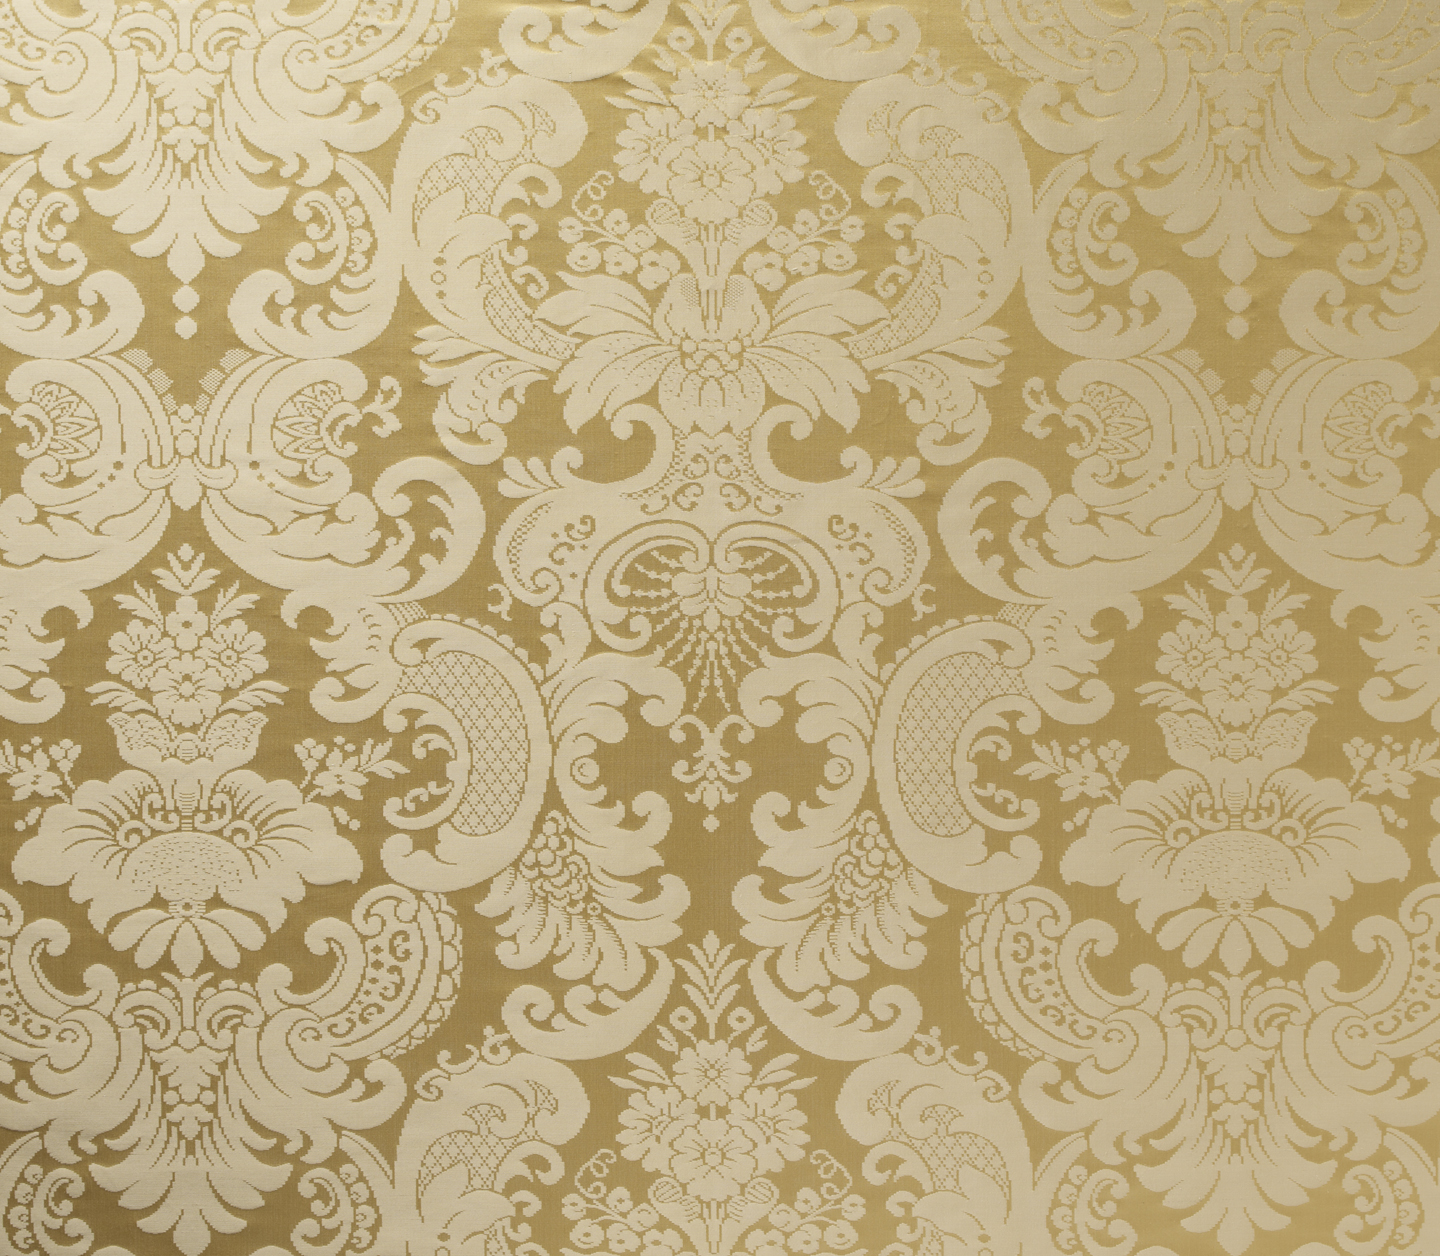 Damask Fabric Wallpaper - WallpaperSafari